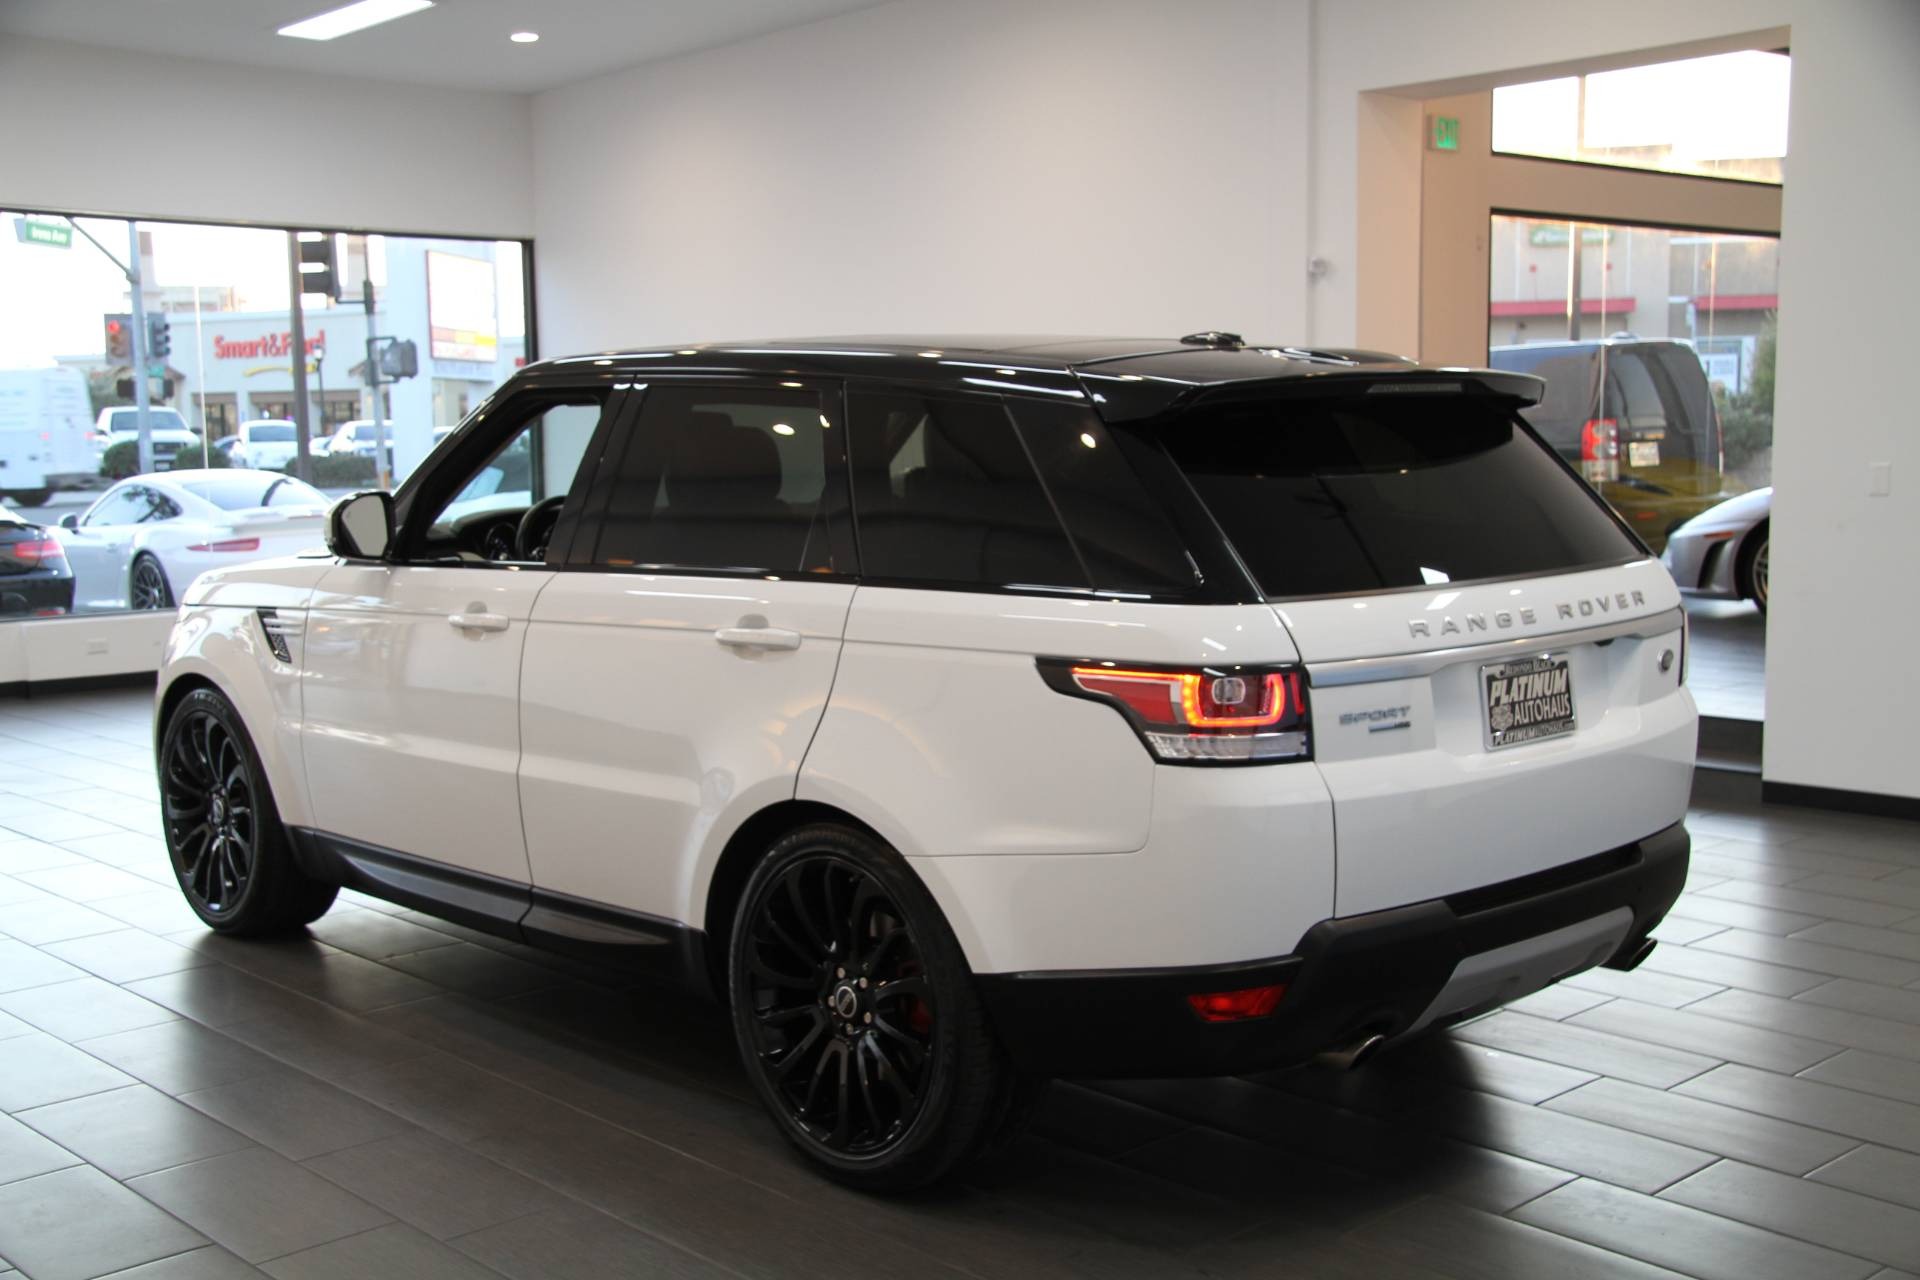 Land Rover For Sale Near Me >> 2015 Land Rover Range Rover Sport HSE Stock # 6103 for ...